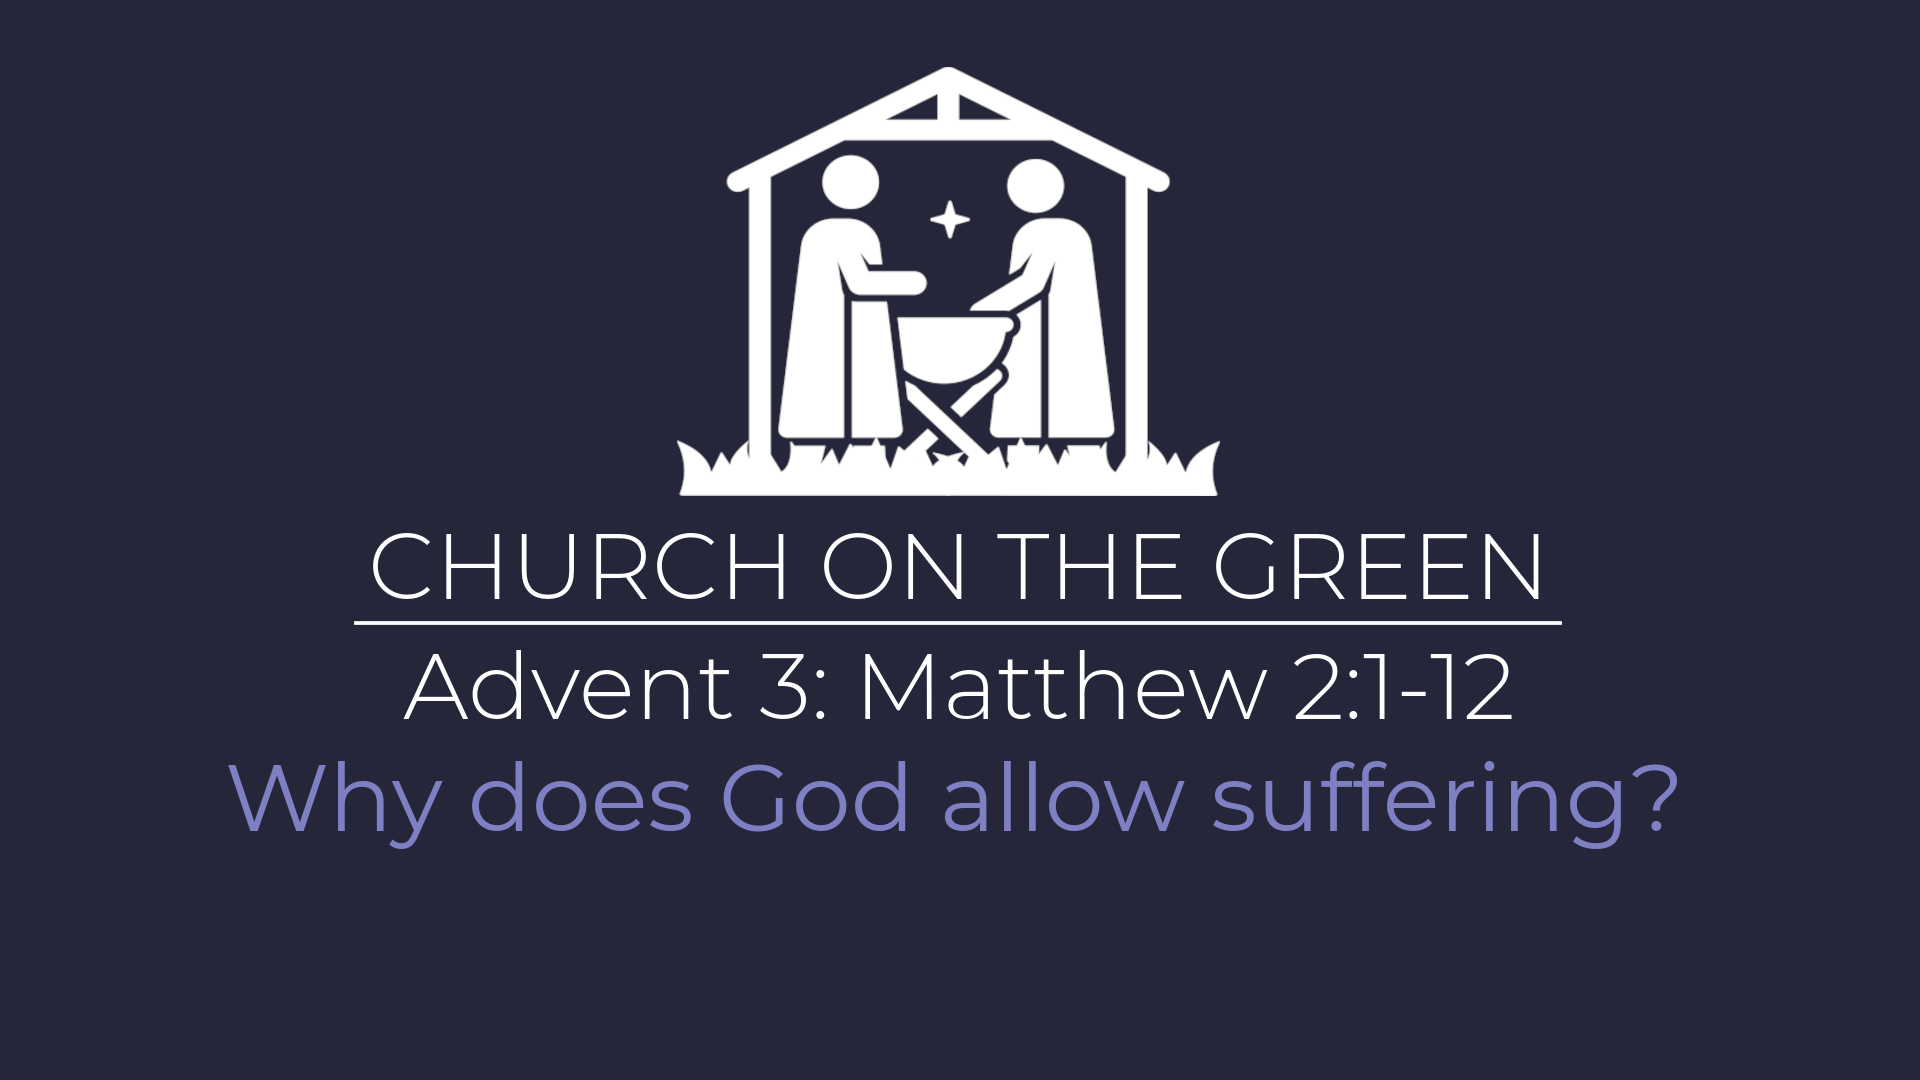 Why does God allow suffering? (Matthew 2:1-12)